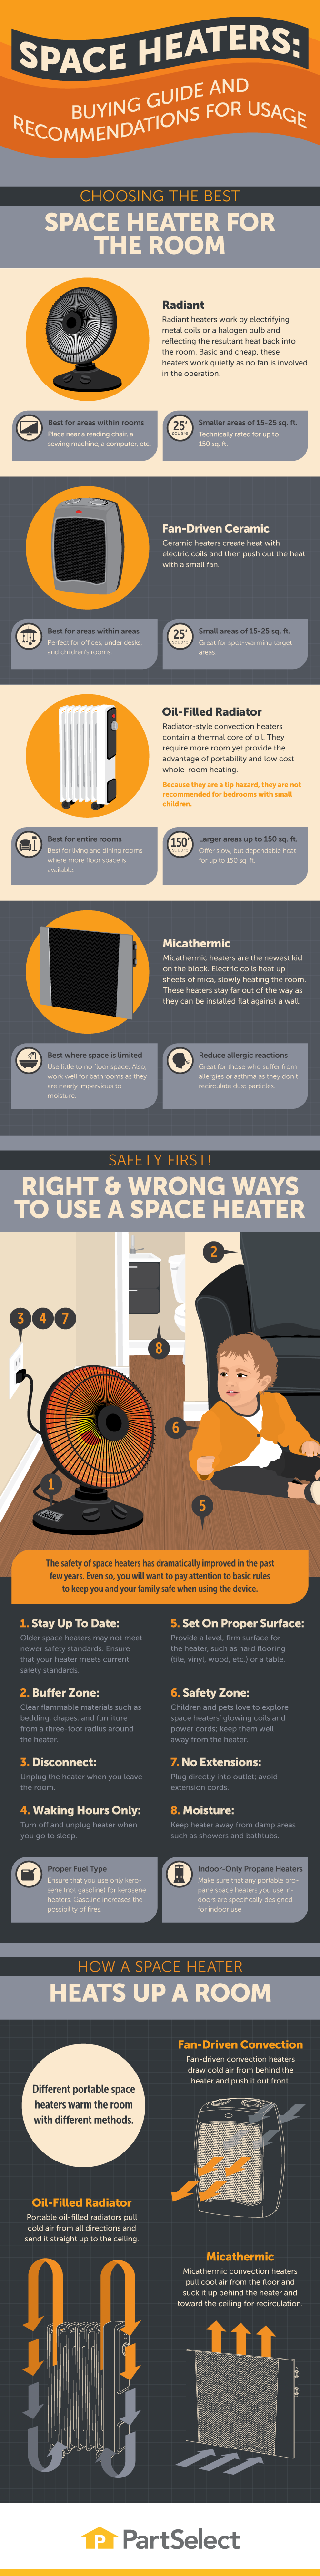 Space Heaters: Buying Guide and Recommendations for Usage